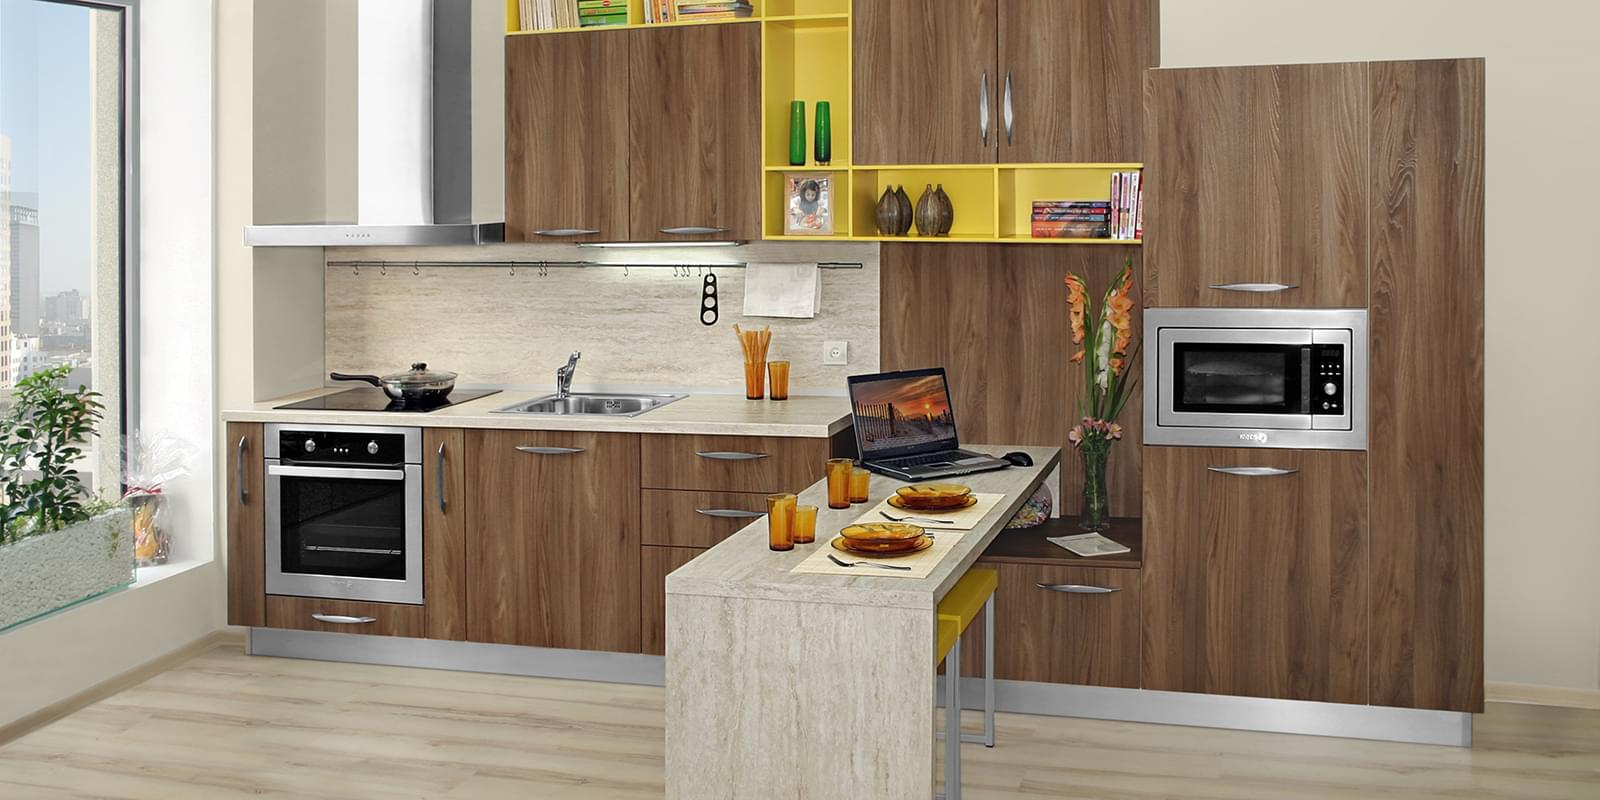 Kitchen Model Dialog Kitchens  Ordering A Kitchen